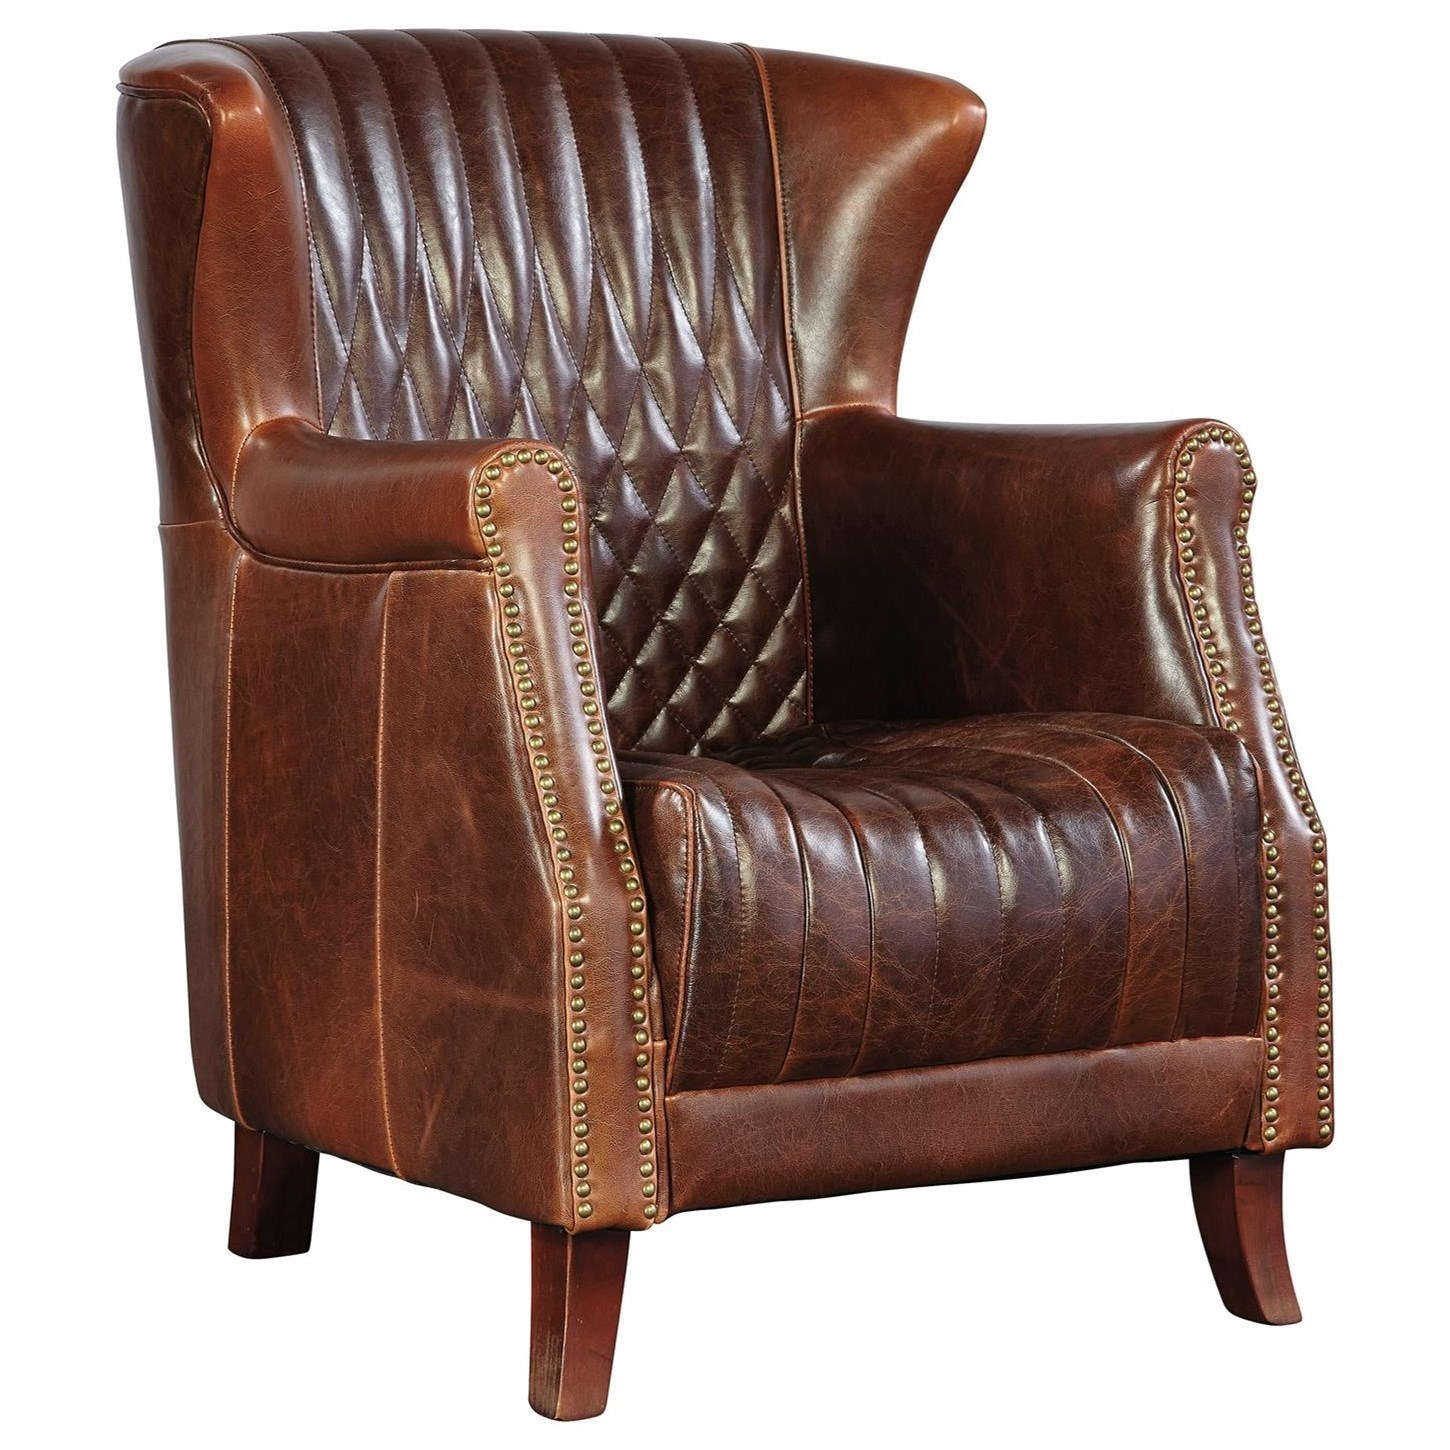 Furniture Classics Occasional Chairs Leather Paris Flea Market Chair With  Wing Back